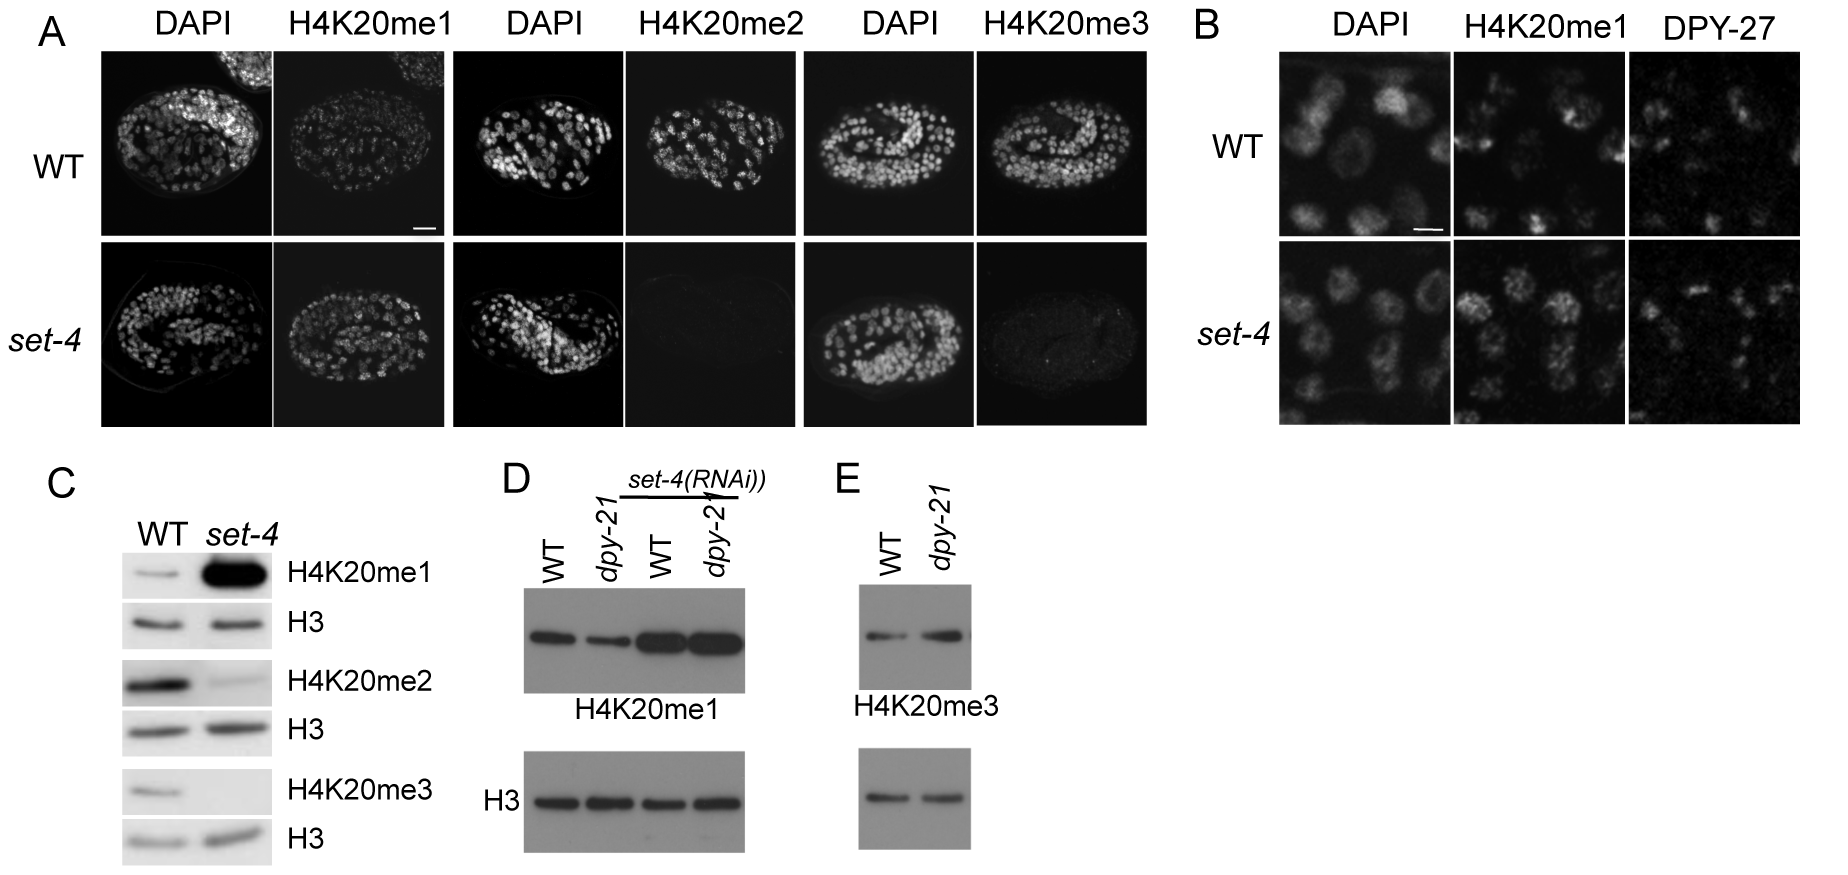 The SET-4 histone methyltransferase is necessary to generate H4K20me2 and H4K20me3.